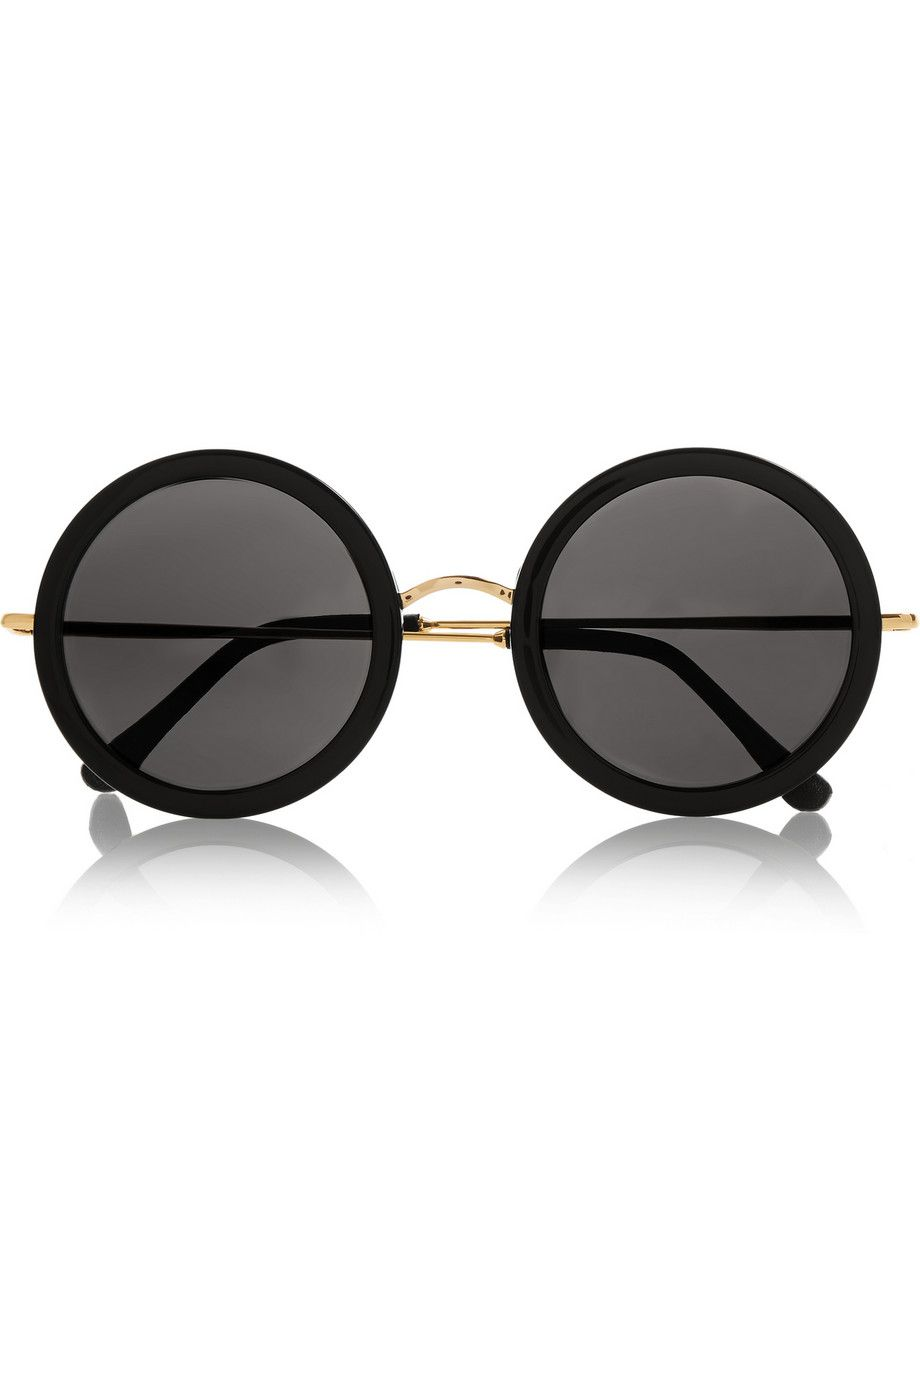 The Rules of Style by Winona Ryder   Inspired   Sunglasses, Round ... cff8f9e69edd